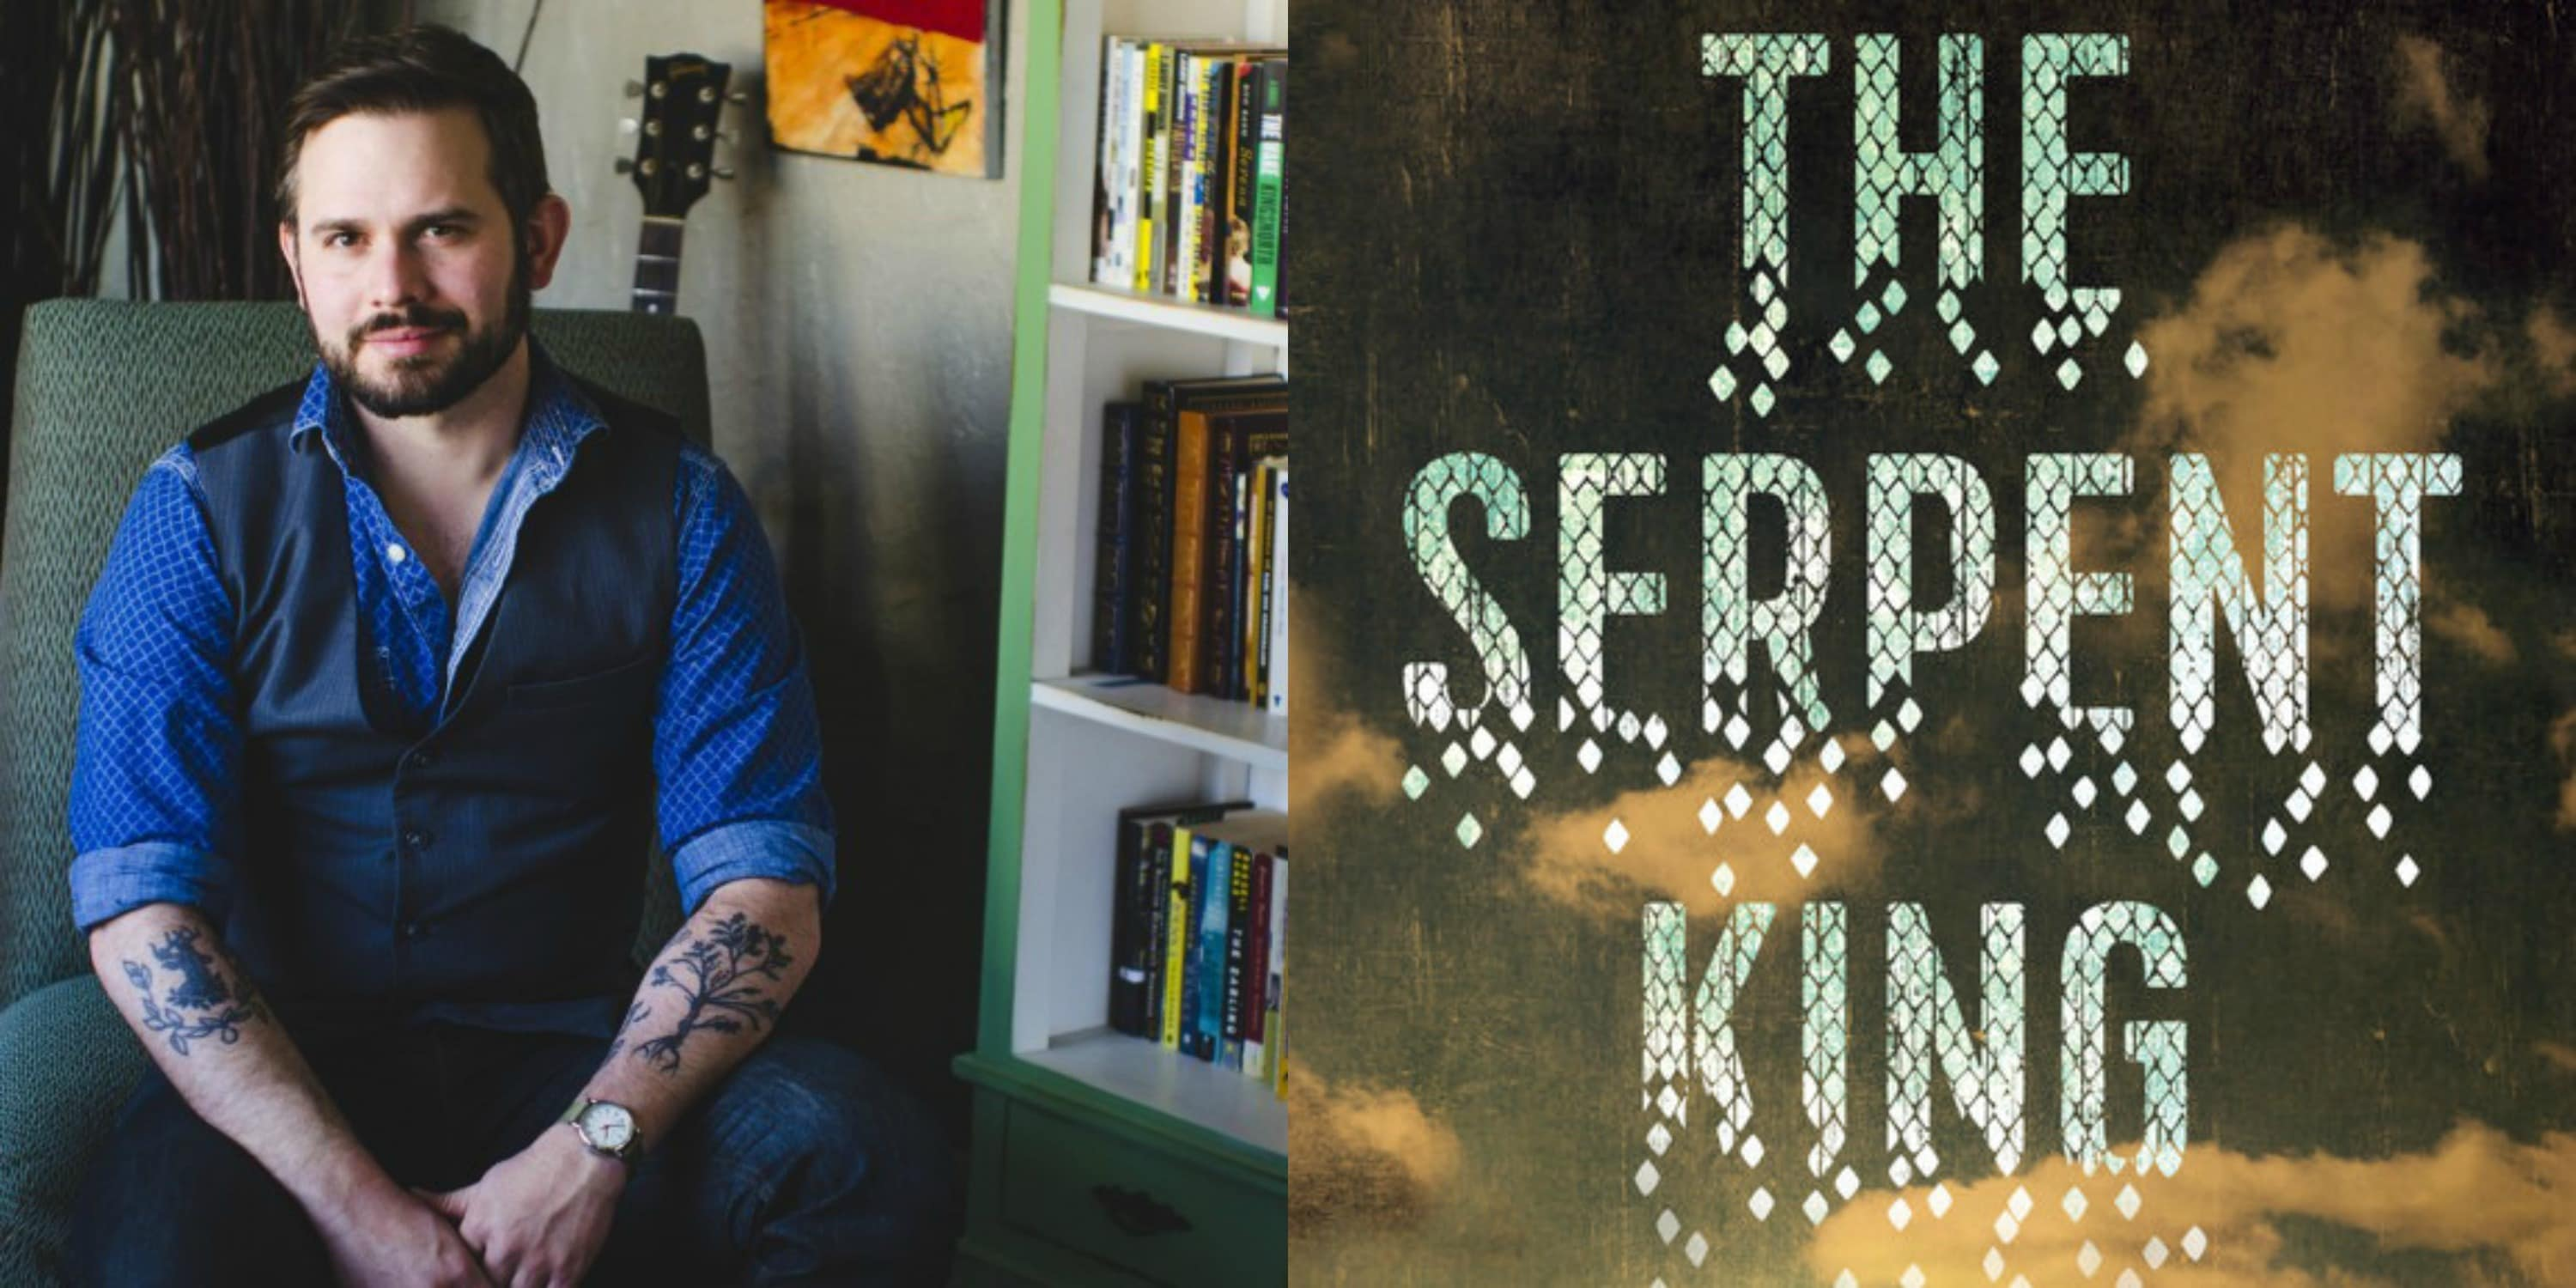 Sundays With Writers: The Serpent King by Jeff Zentner